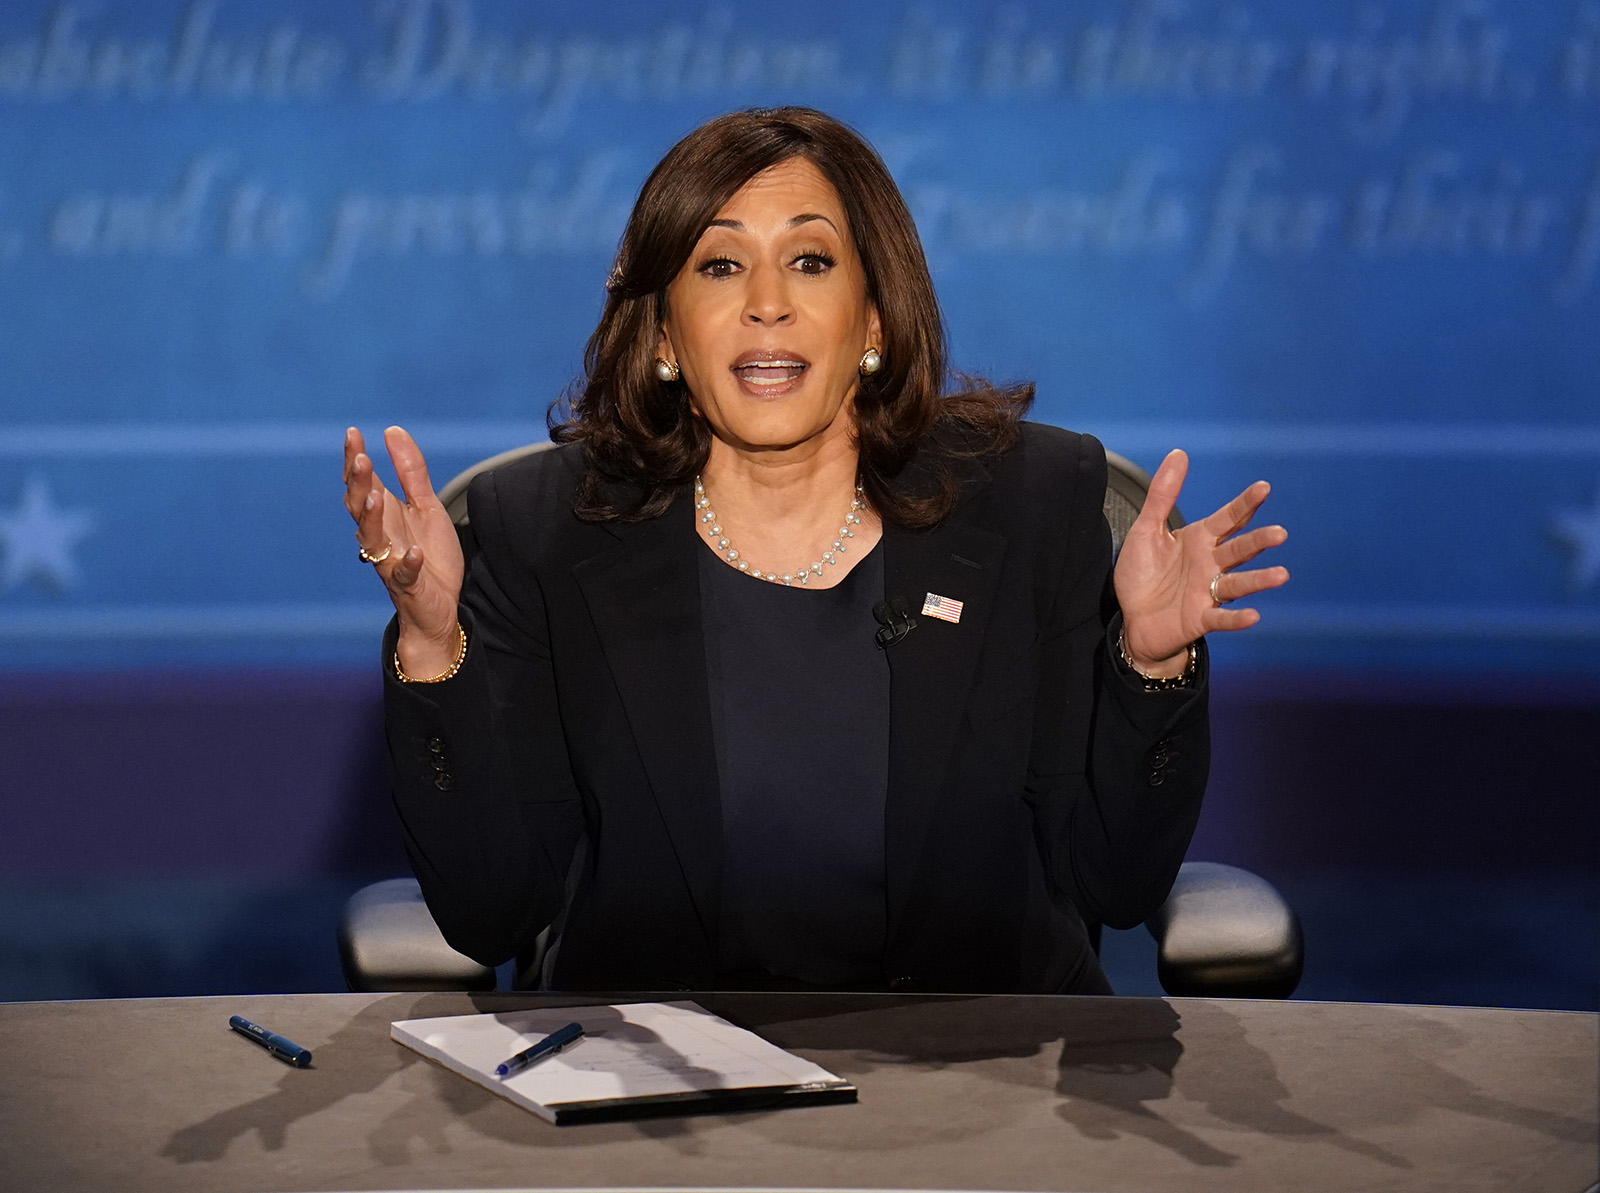 Democratic vice presidential candidate Sen. Kamala Harris responds to a question during the vice presidential debate on Wednesday in Salt Lake City.